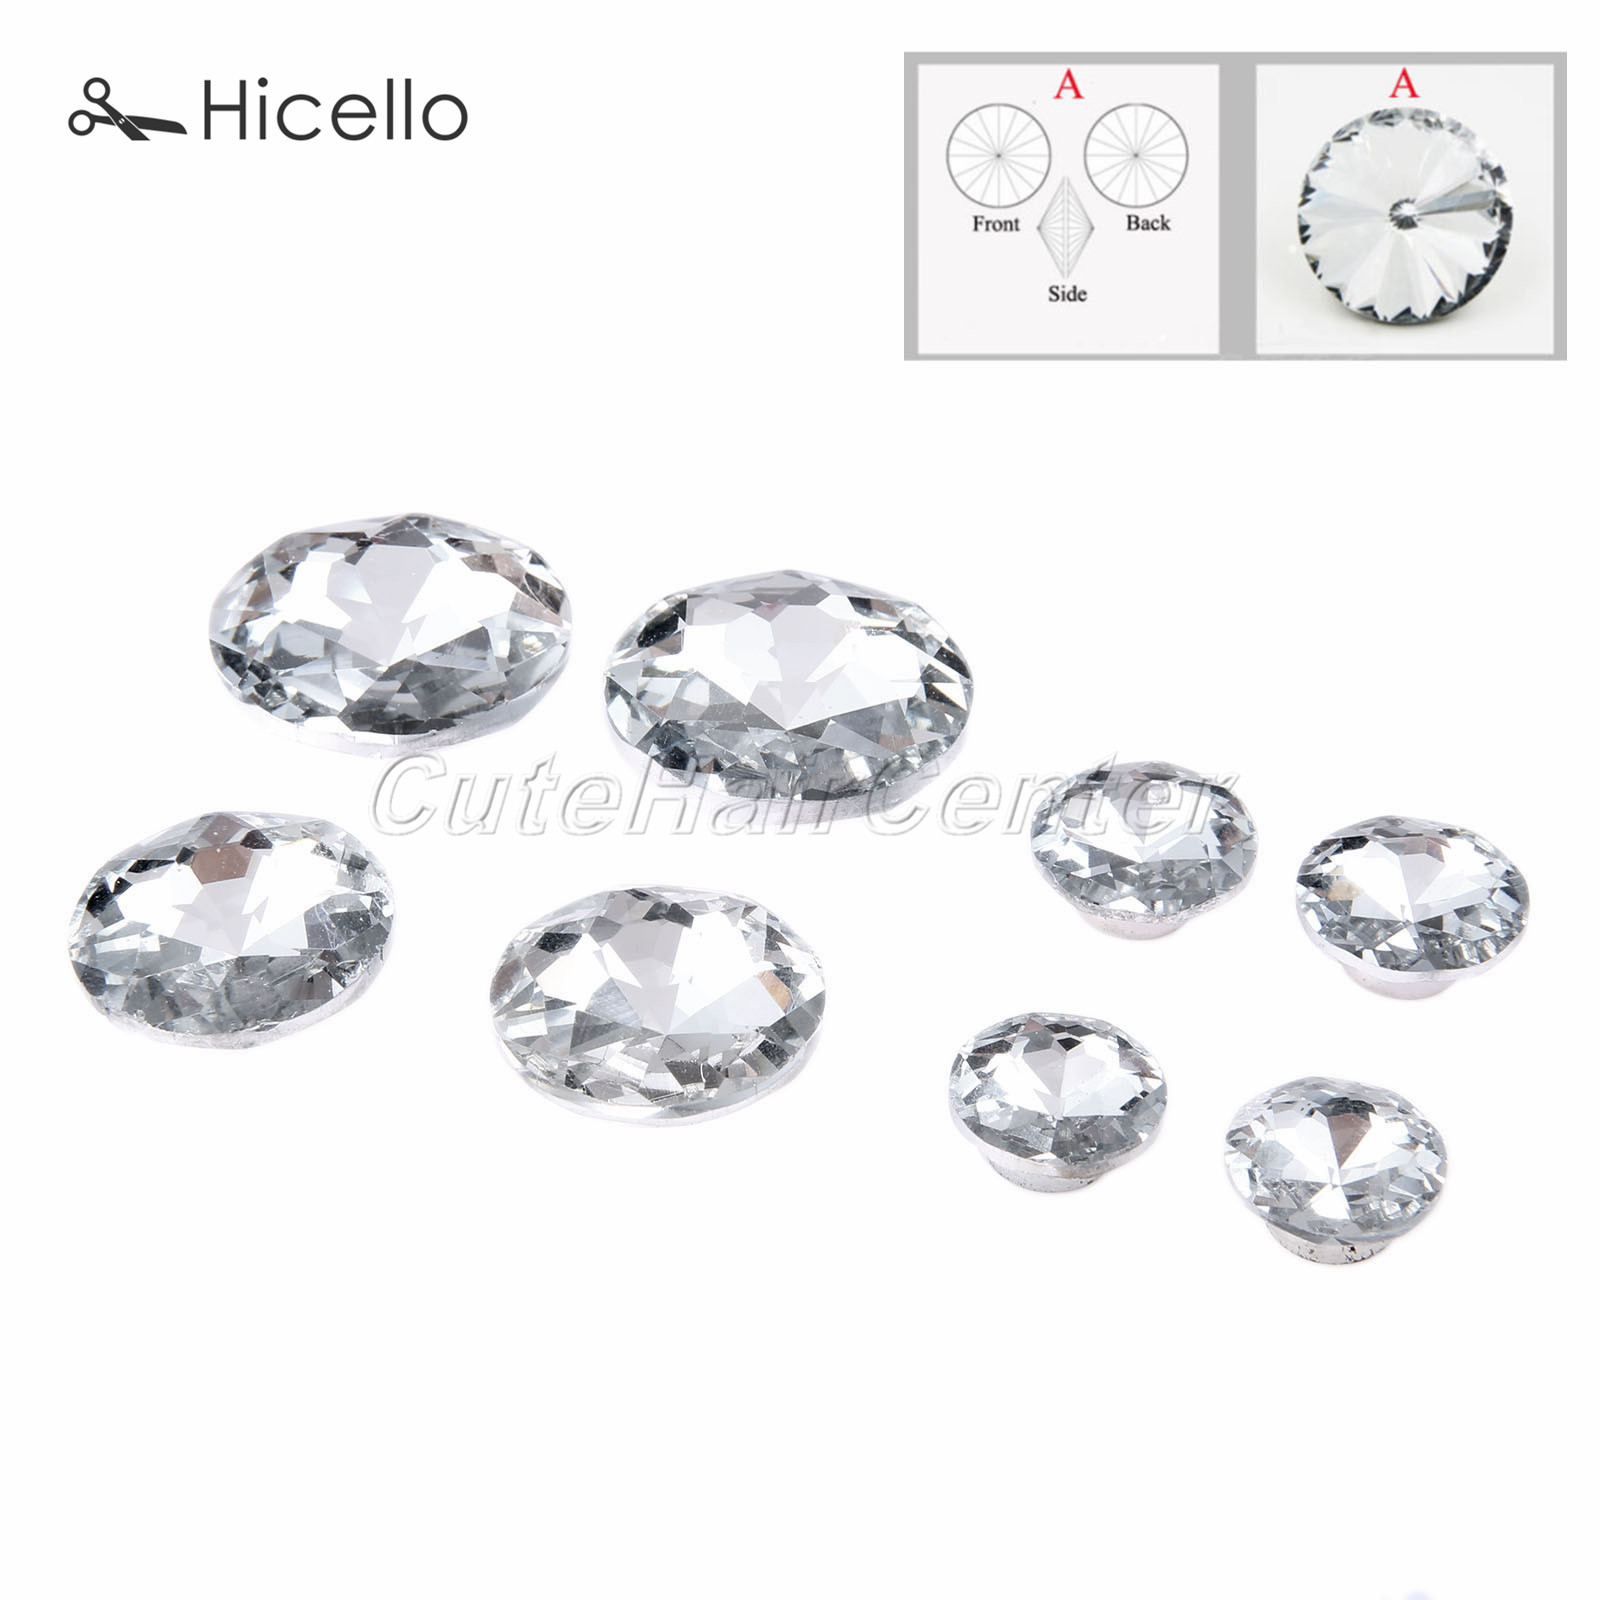 Buttons Home & Garden 10sets Crystal Buckles Glass Buttons Diamond Nails Decorative Sewing Knot 16mm/18mm/25mm/30mm Decoration Hicello